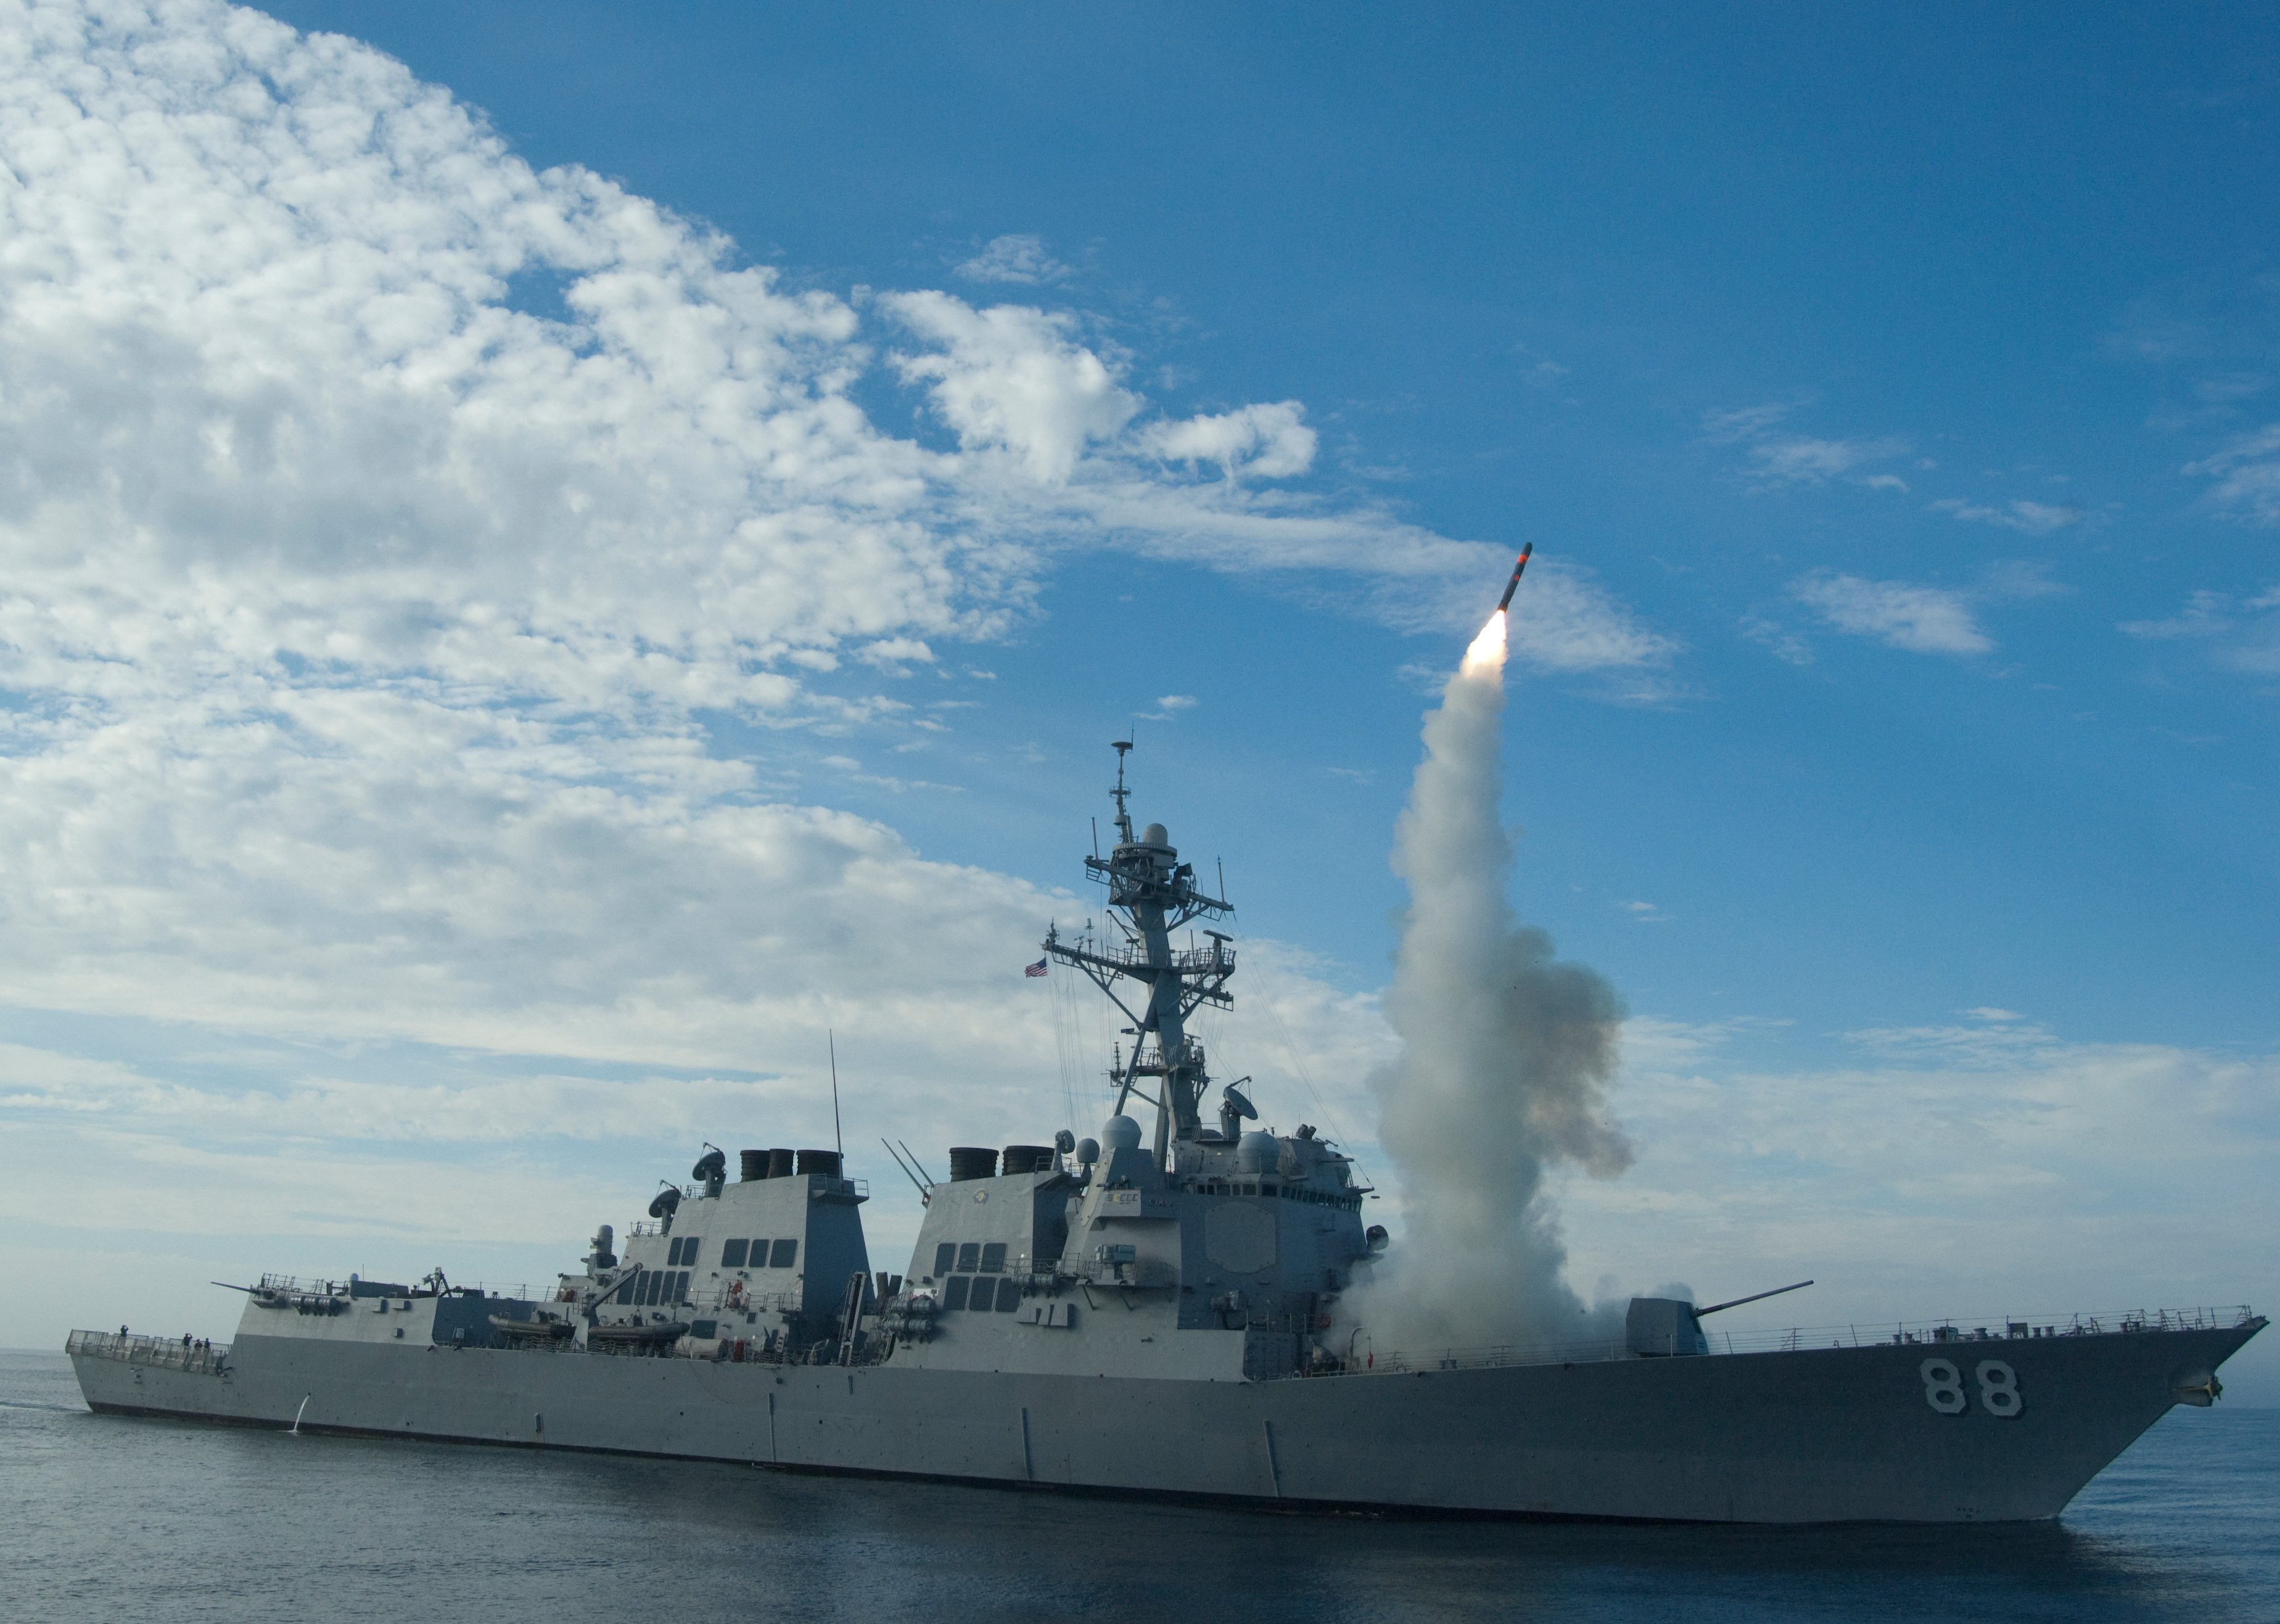 USS Preble (DDG-88) conduct an operational tomahawk missile launch while underway in a training area off the coast of California in 2010. US Navy Photo